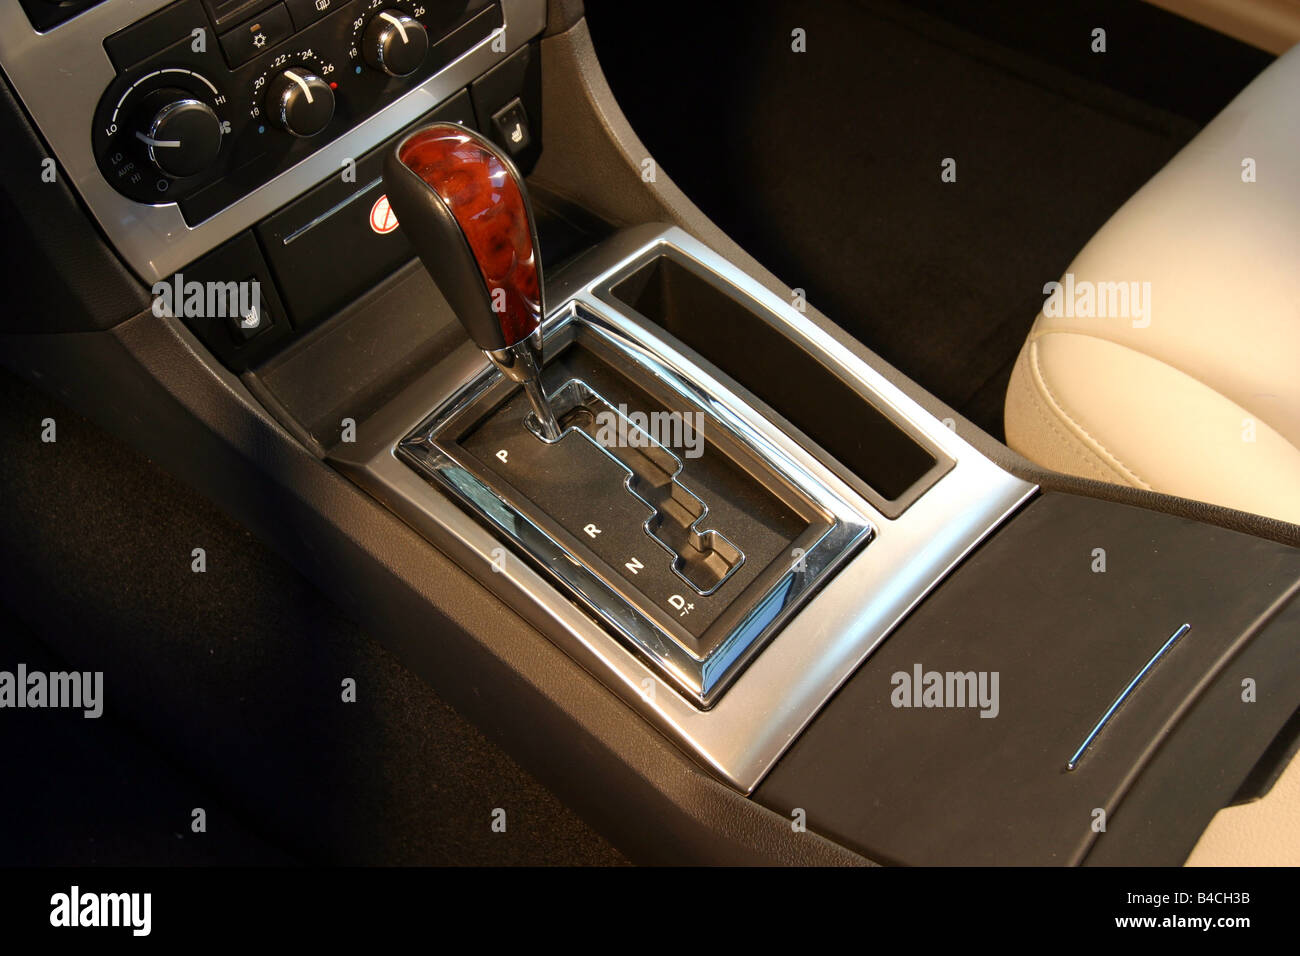 5 Lever Stock Photos & 5 Lever Stock Images - Alamy